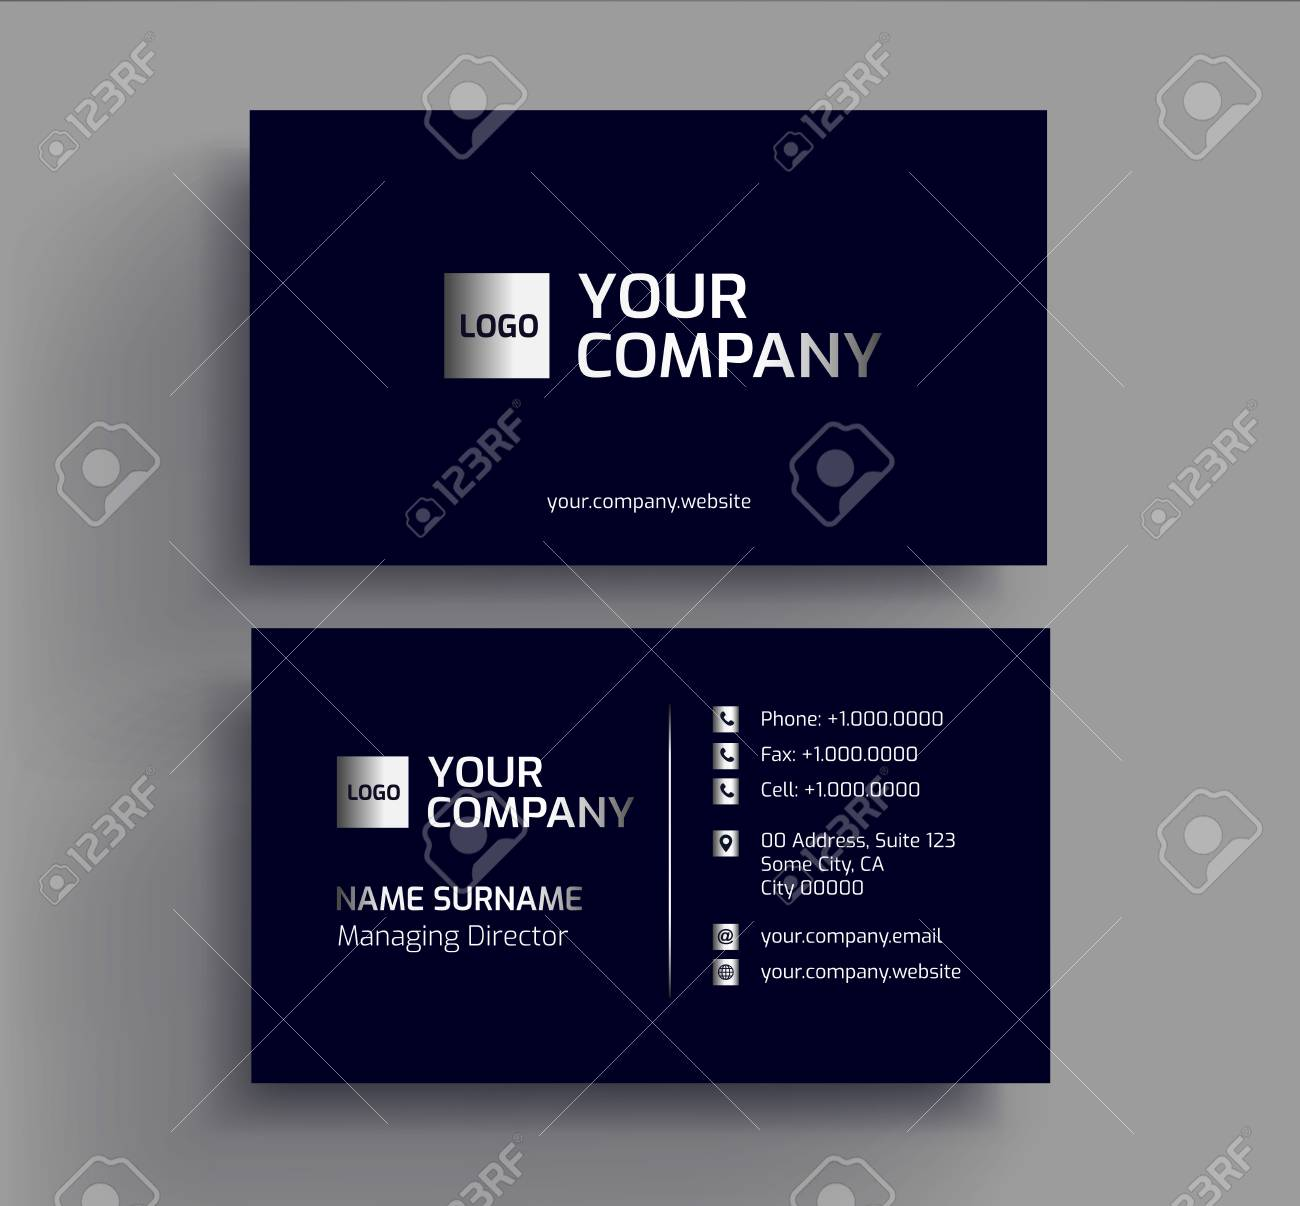 stylish dark business card design template black silver platinum